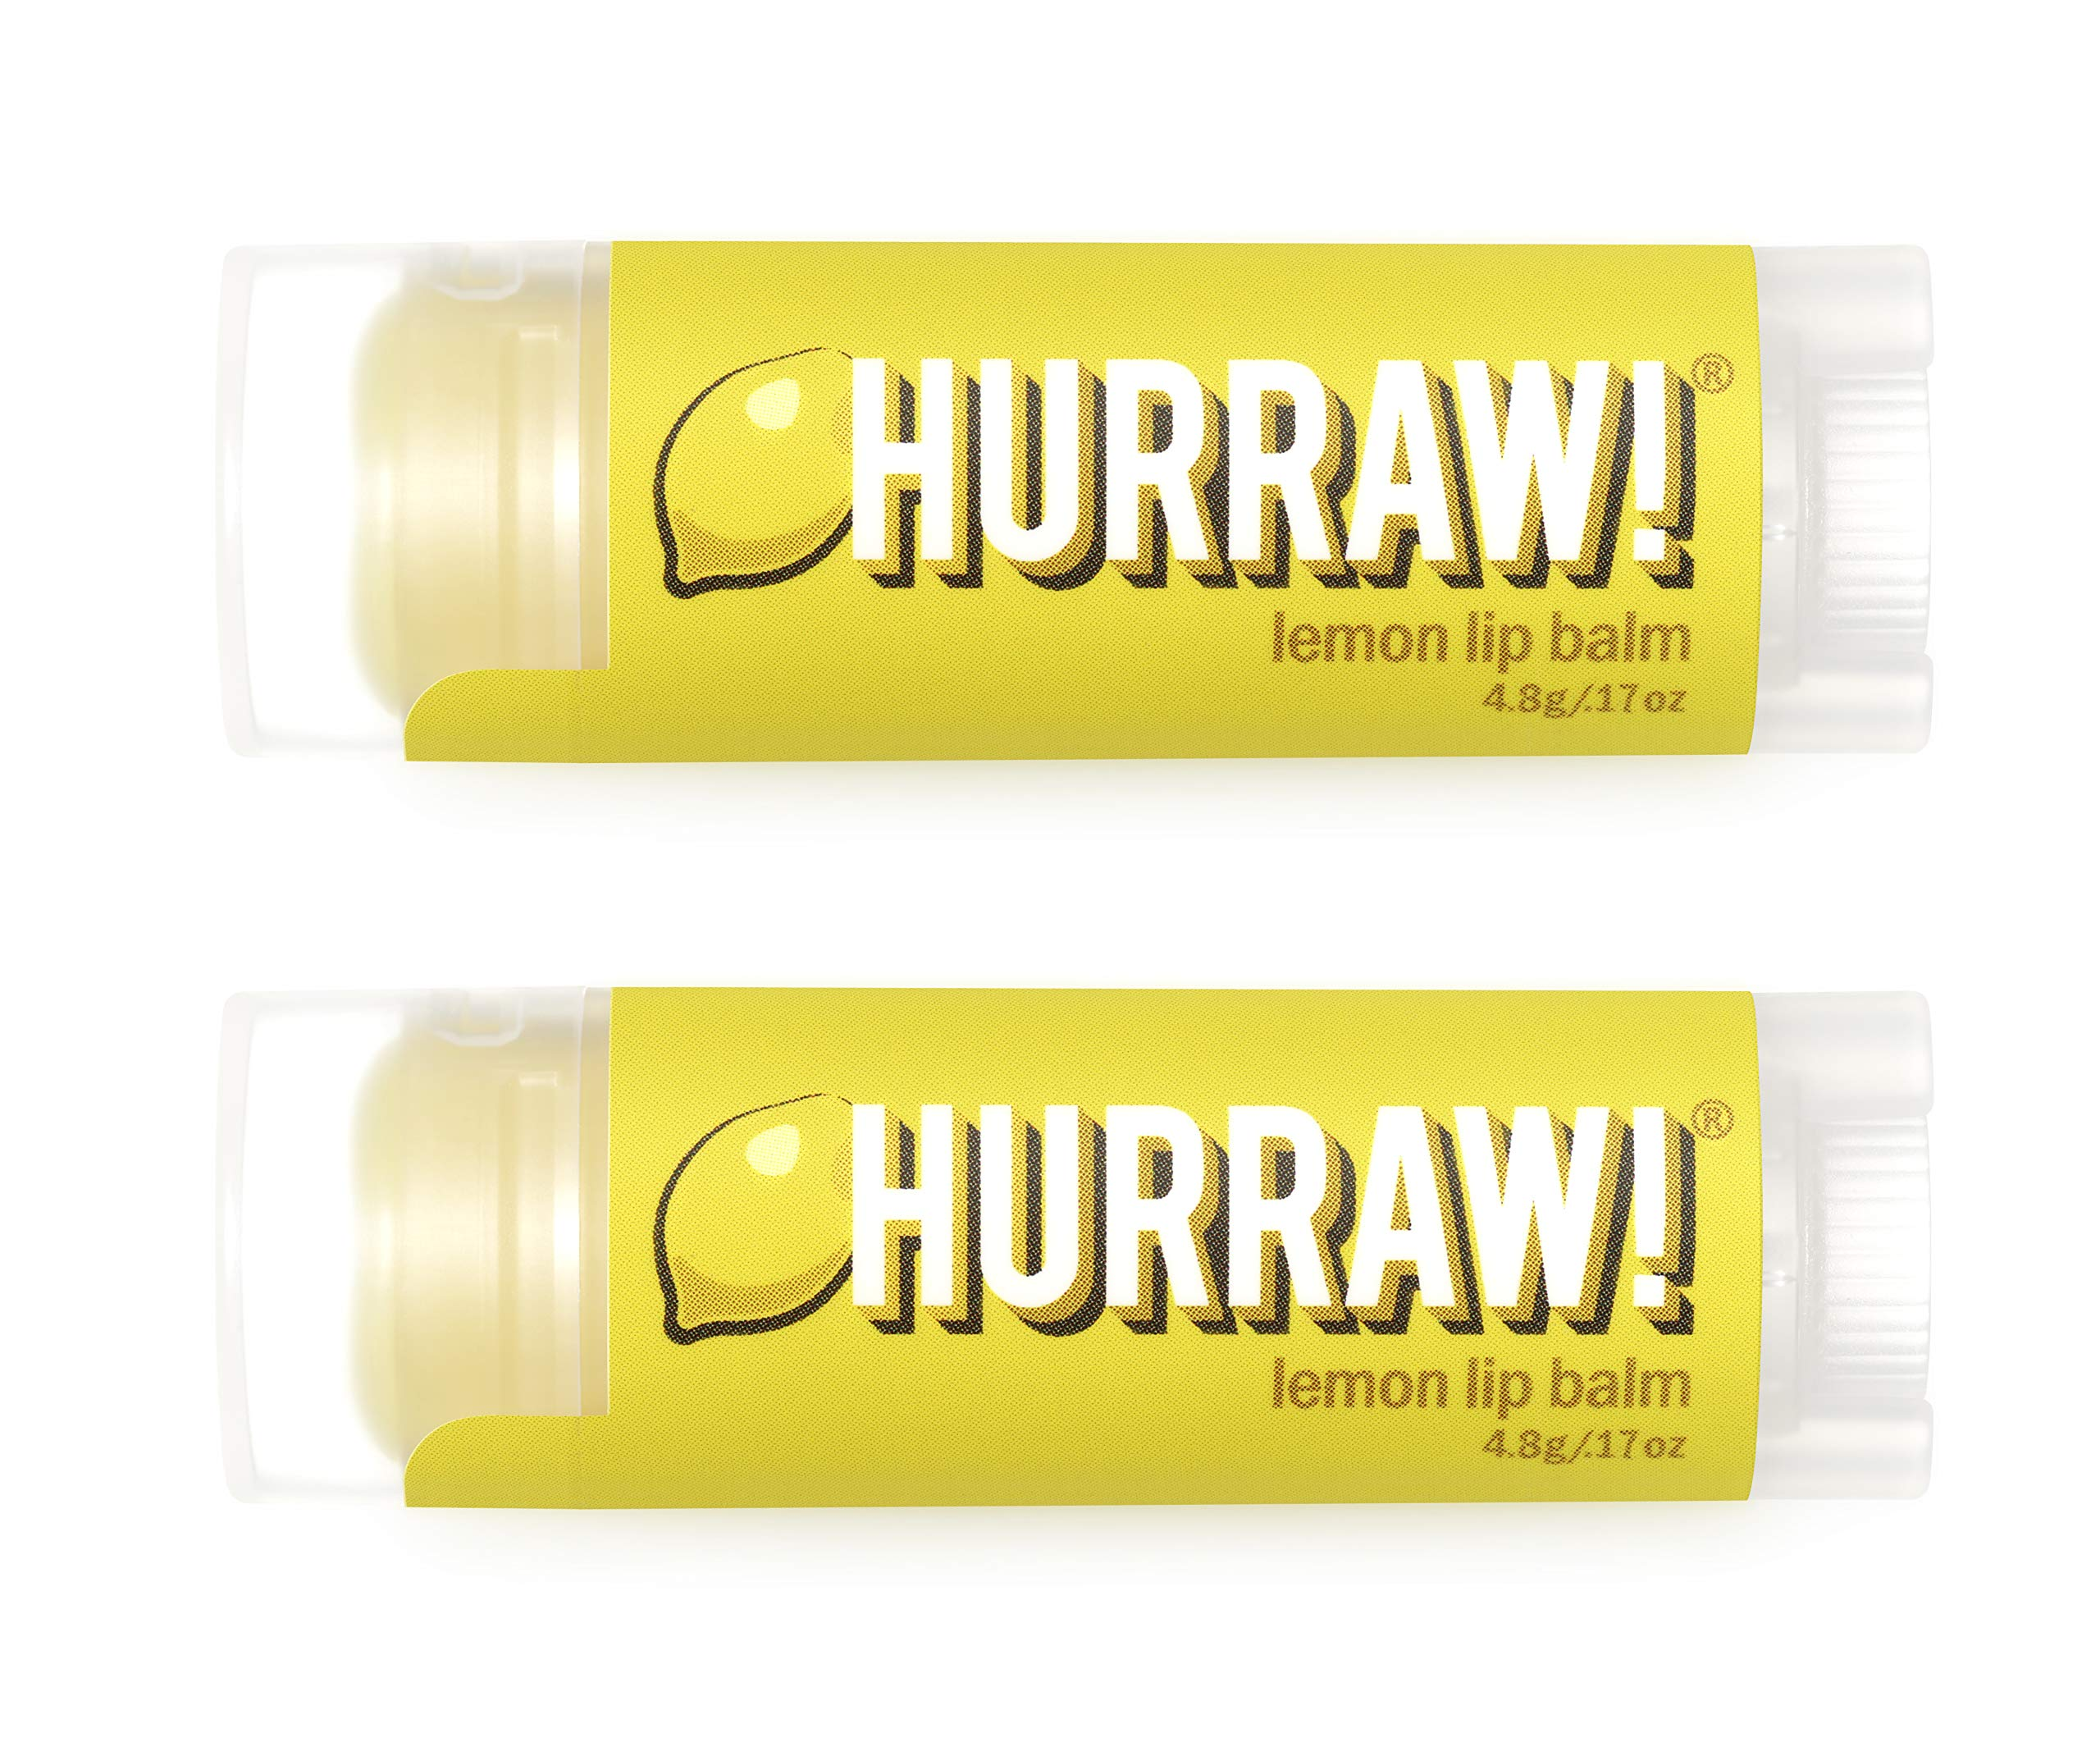 Hurraw Lemon Lip Balm, 2 Pack – Organic, Certified Vegan, Cruelty and Gluten Free. Non-GMO, 100% Natural Ingredients. Bee, Shea, Soy and Palm Free. Made in USA